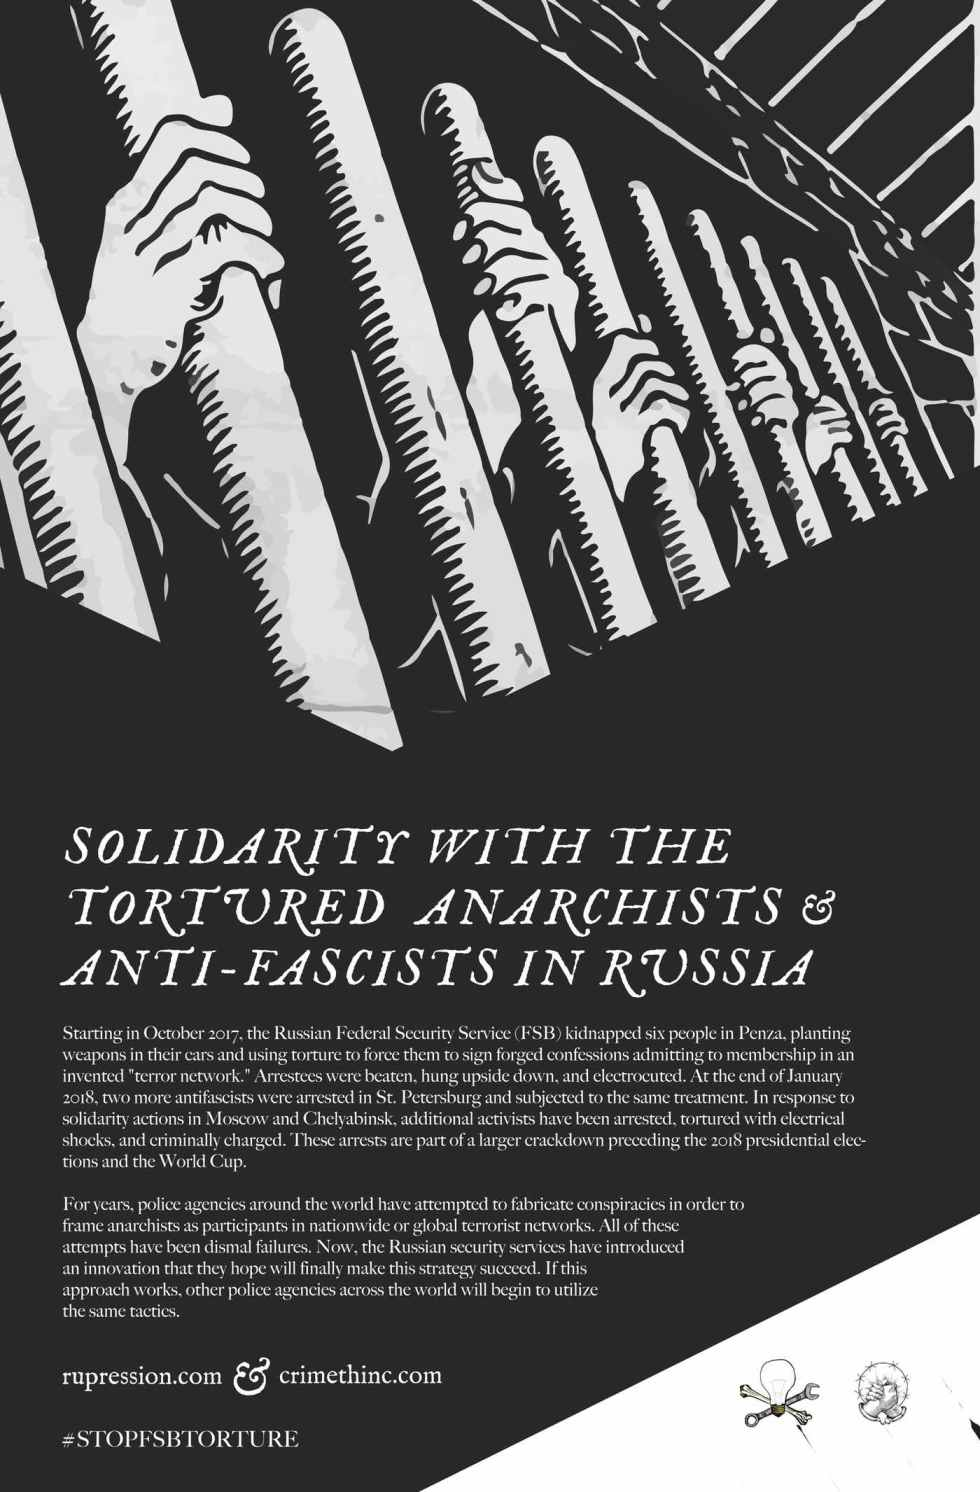 solidarity-with-the-tortured-anarchists-and-anti-fascists-in-russia-poster-1